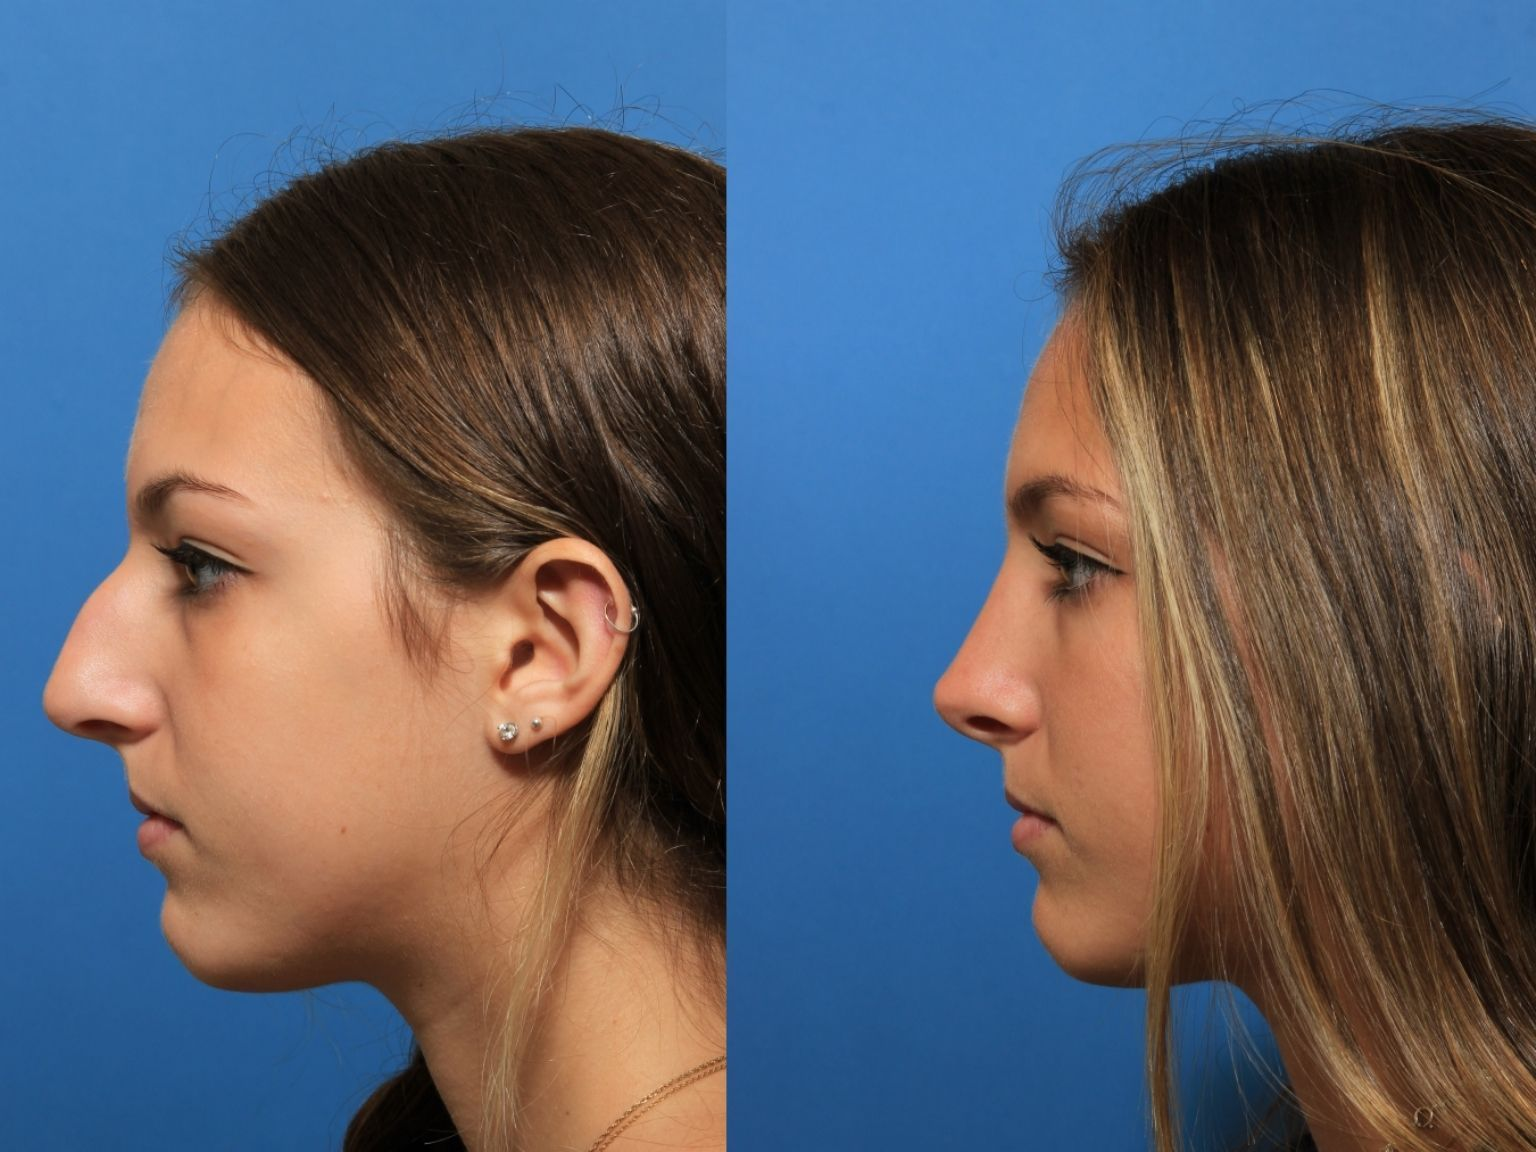 Pin by Dima on Rhinoplasty in 2020 Nonsurgical nose job